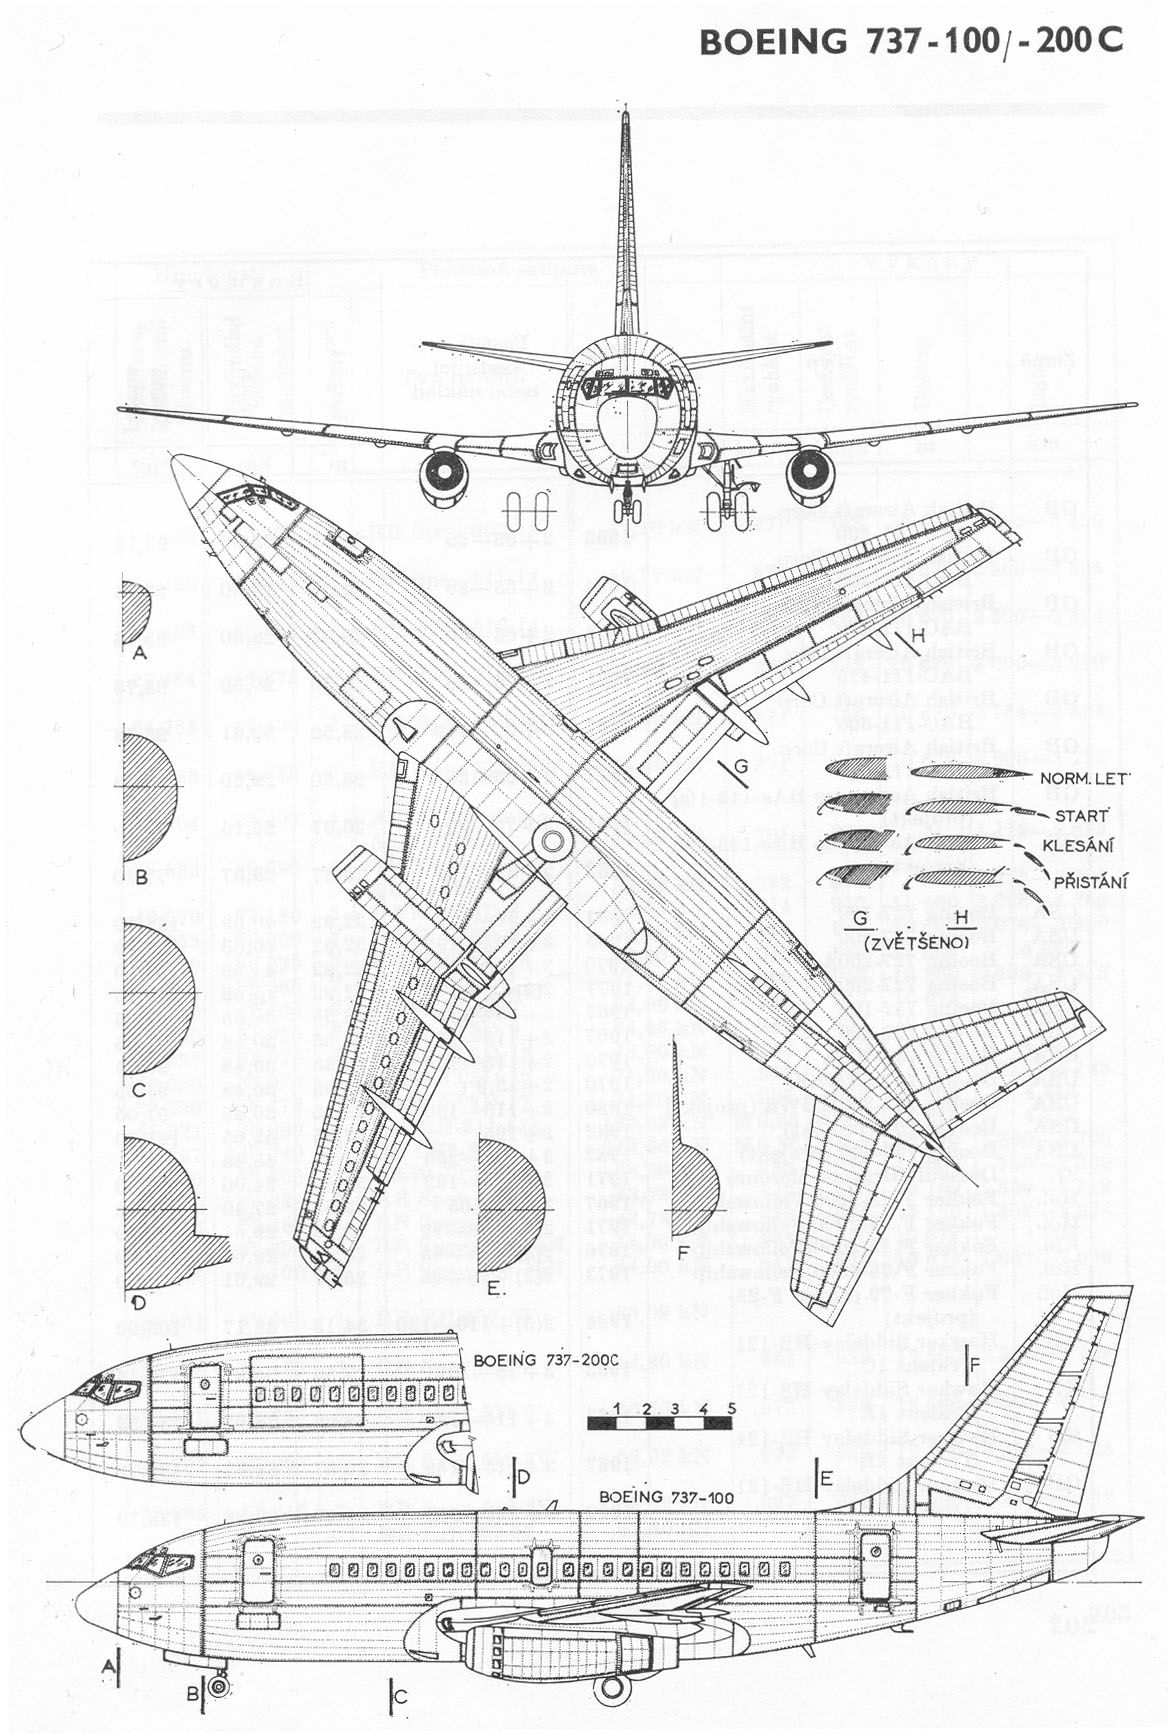 Aircraft Blueprint Boeing 737-100 | Blueprints | Aircraft ...